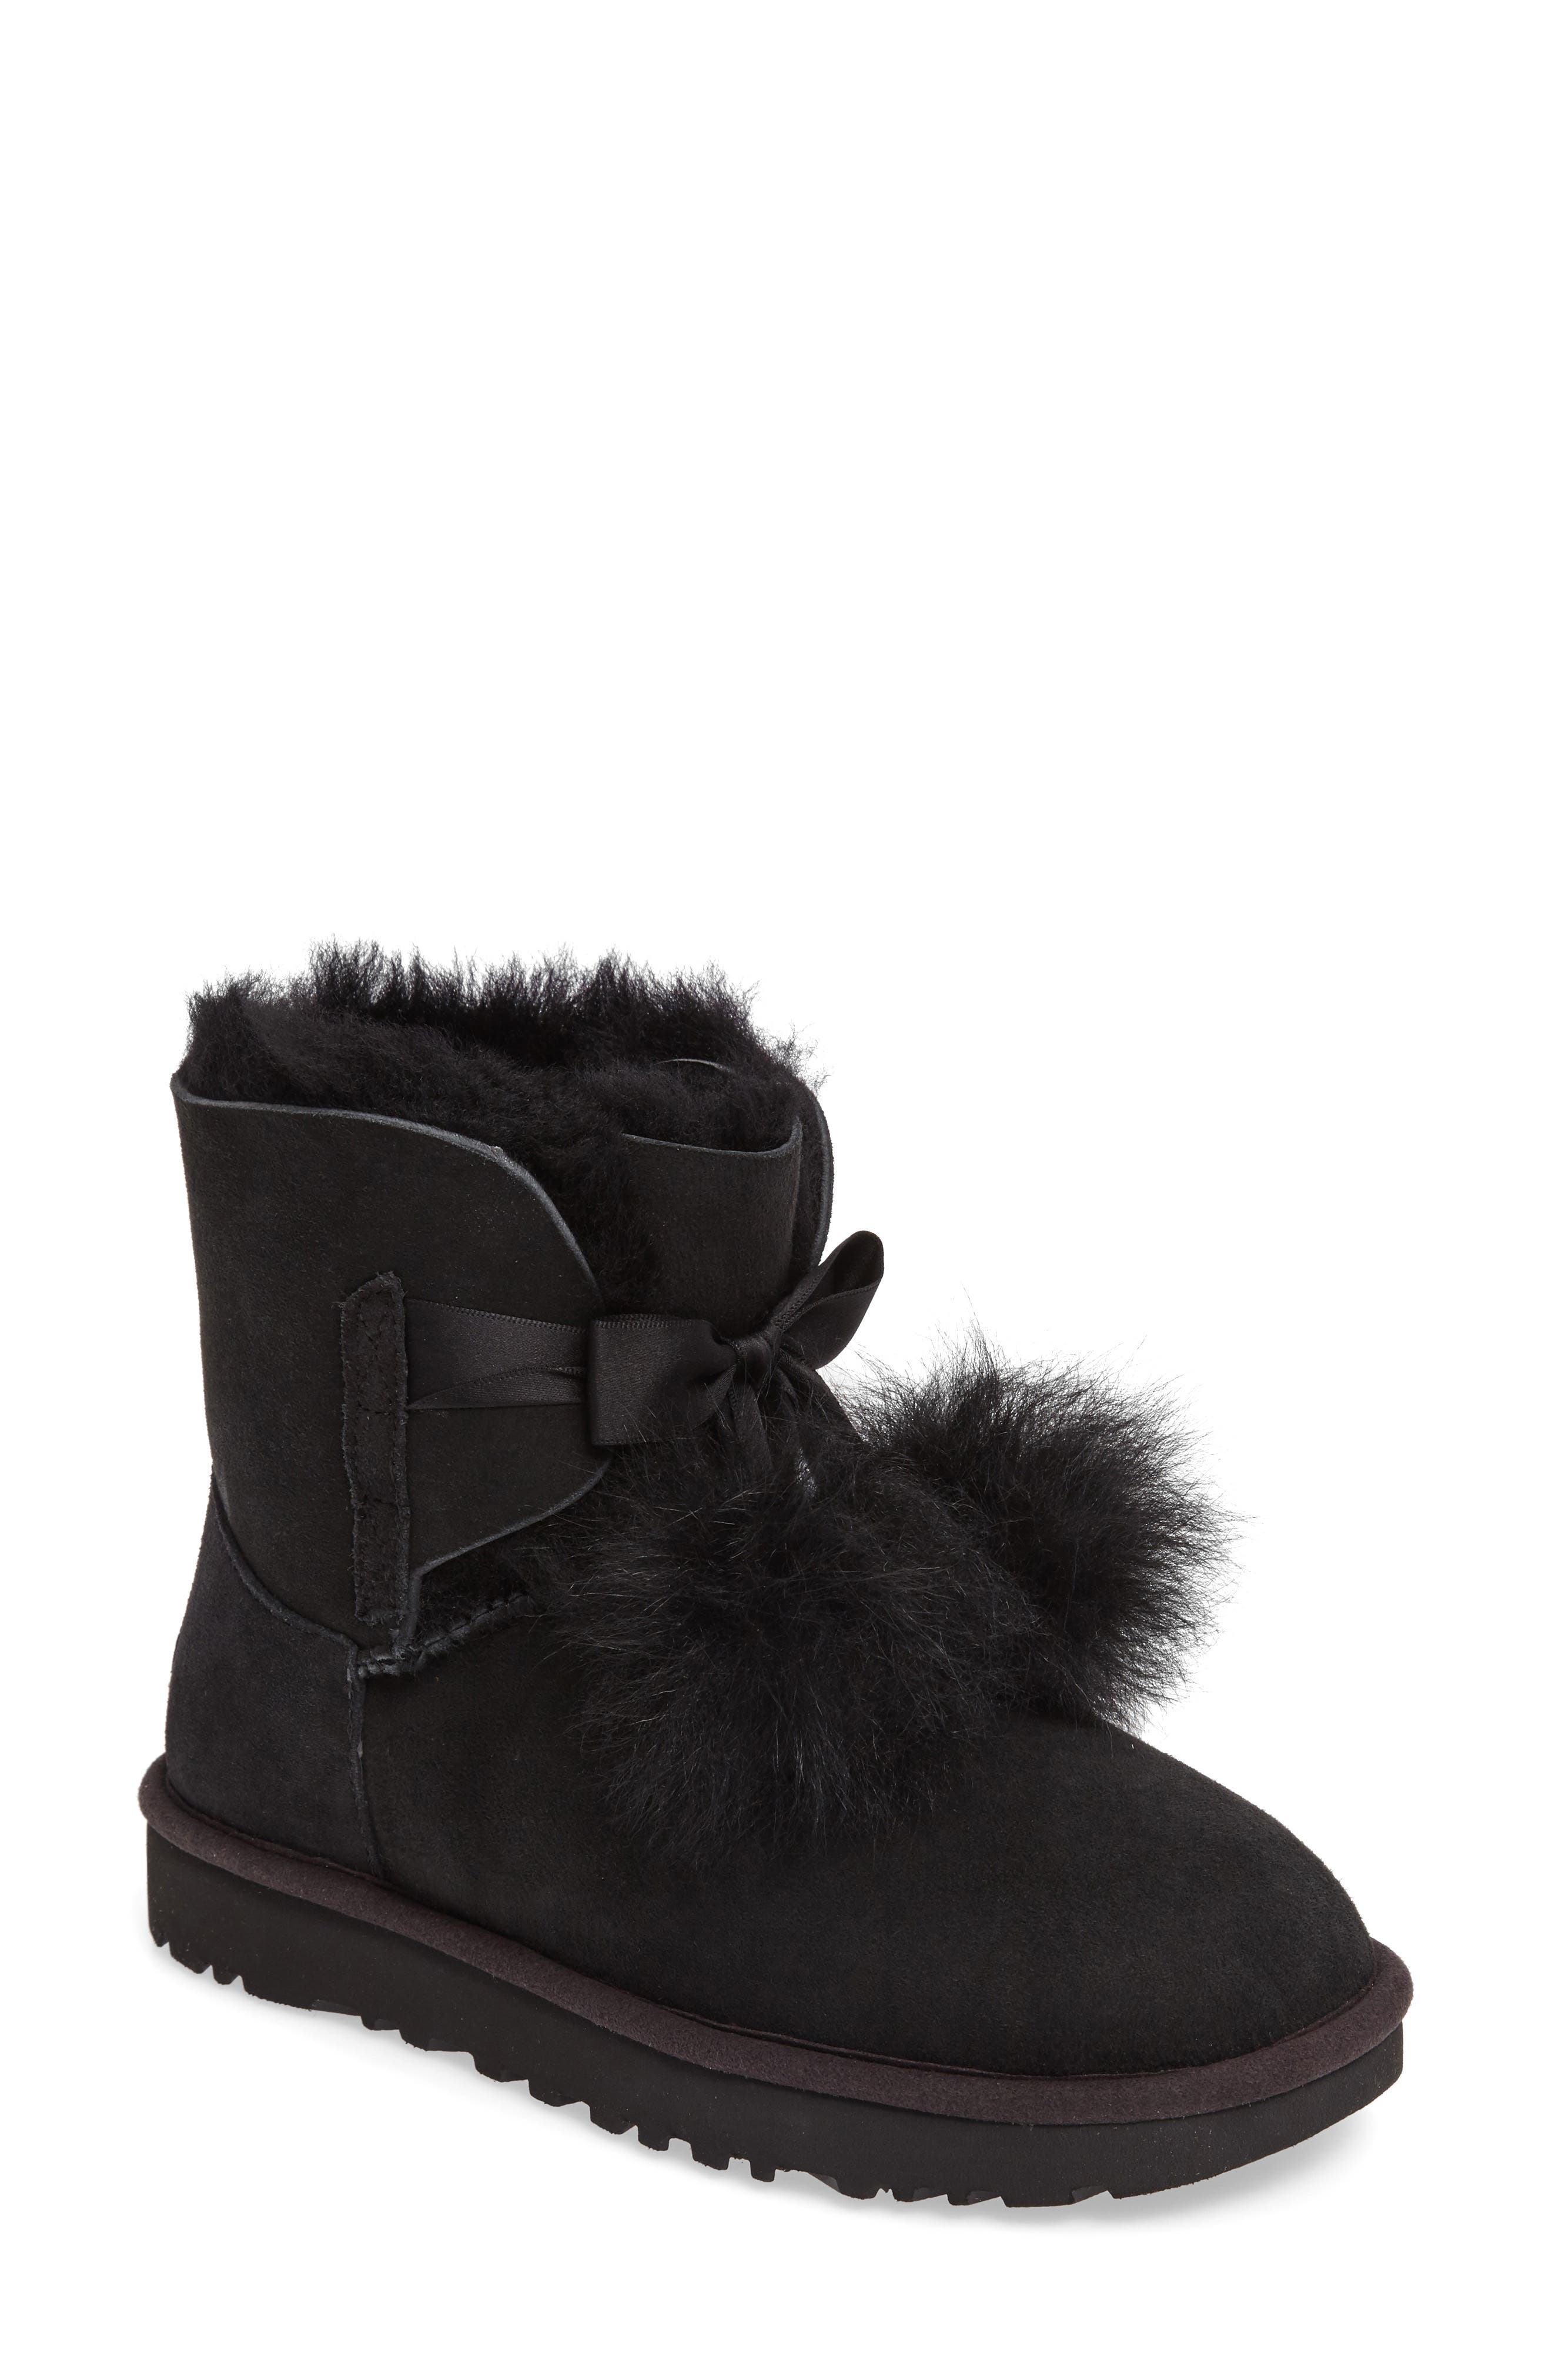 Gita Genuine Shearling Boot,                         Main,                         color, Black Suede